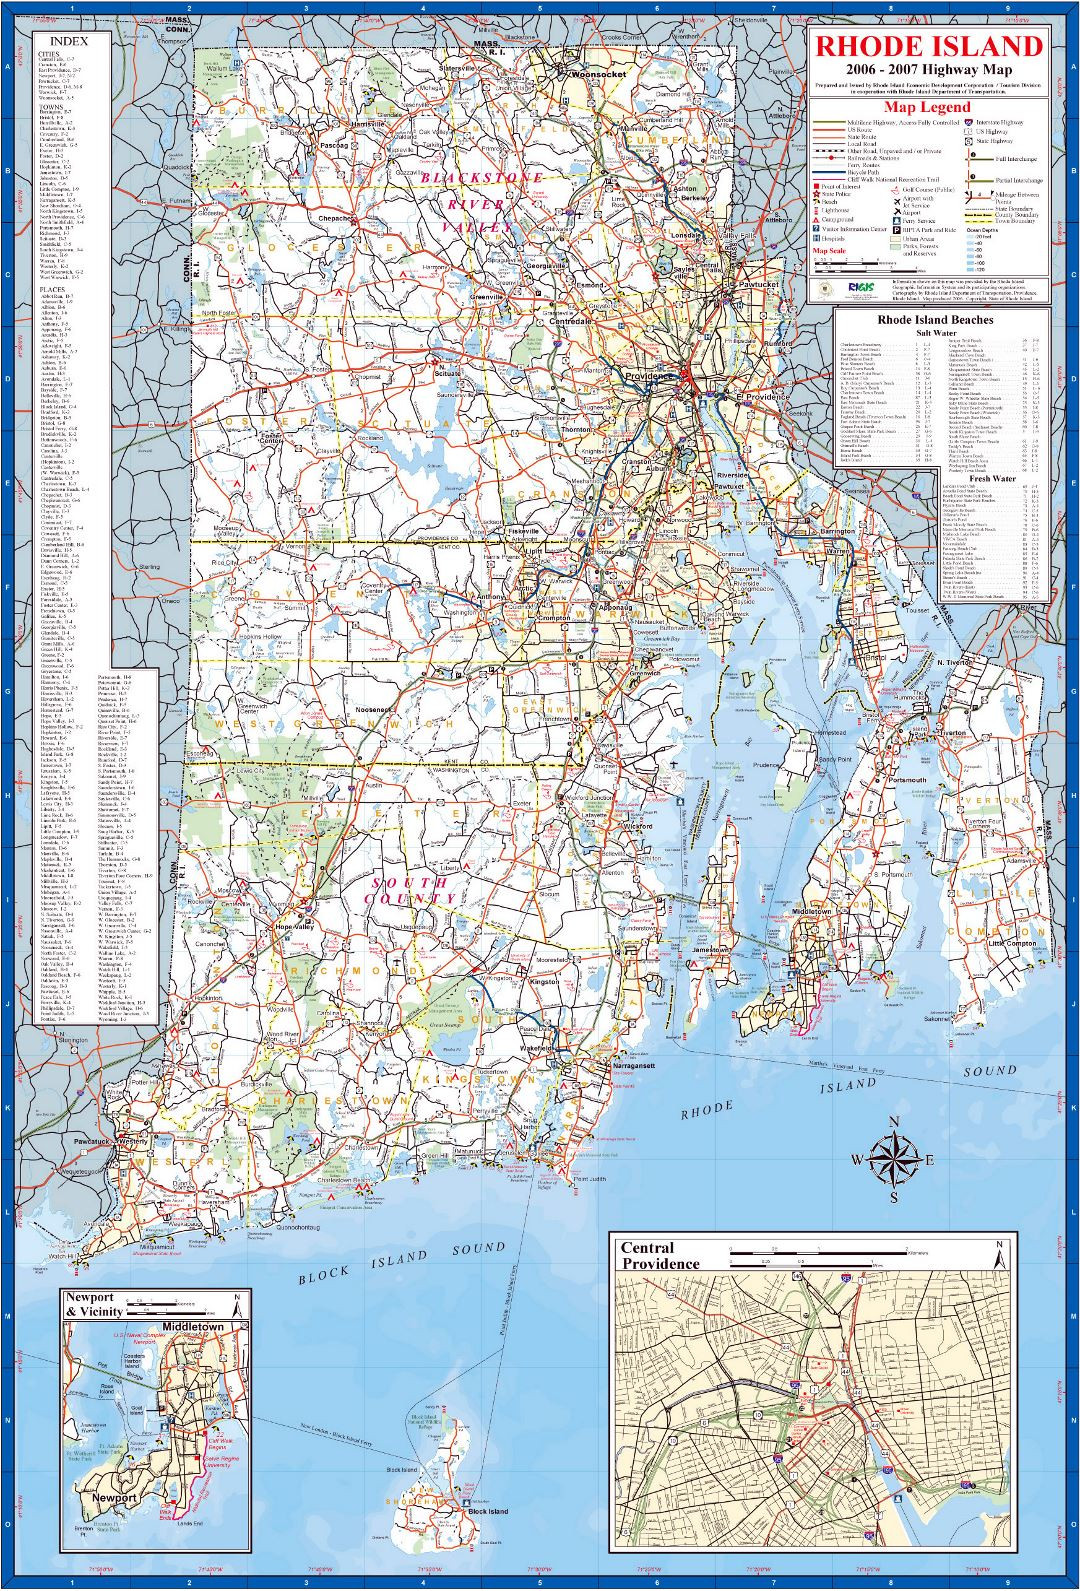 Large highway map of the state of Rhode Island